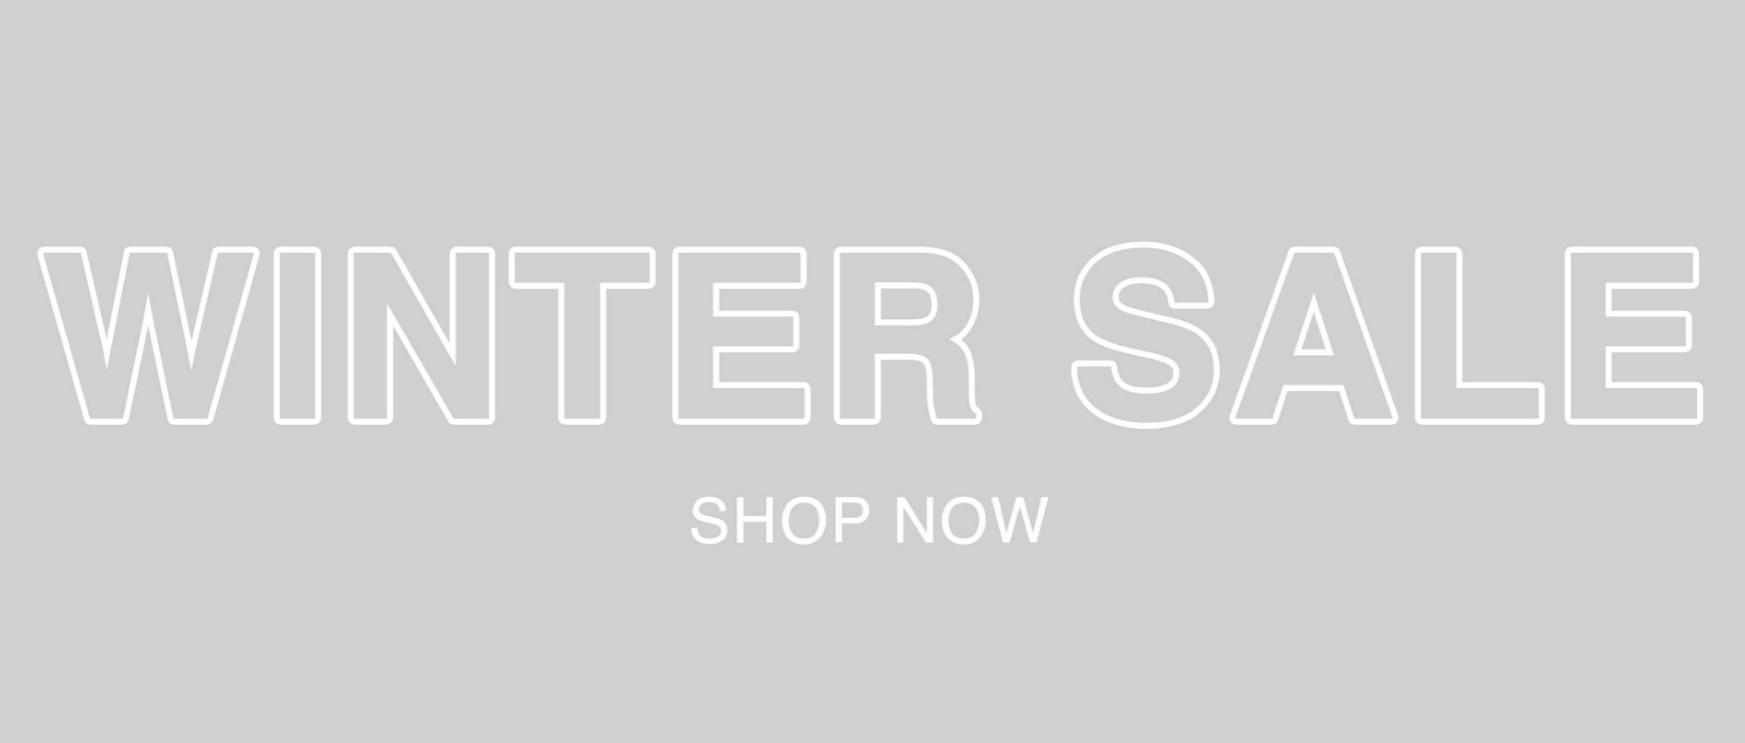 Stuarts London: Sale up to 65% off men's designer clothes including CP Company, Edwin Jeans and Adidas Originals